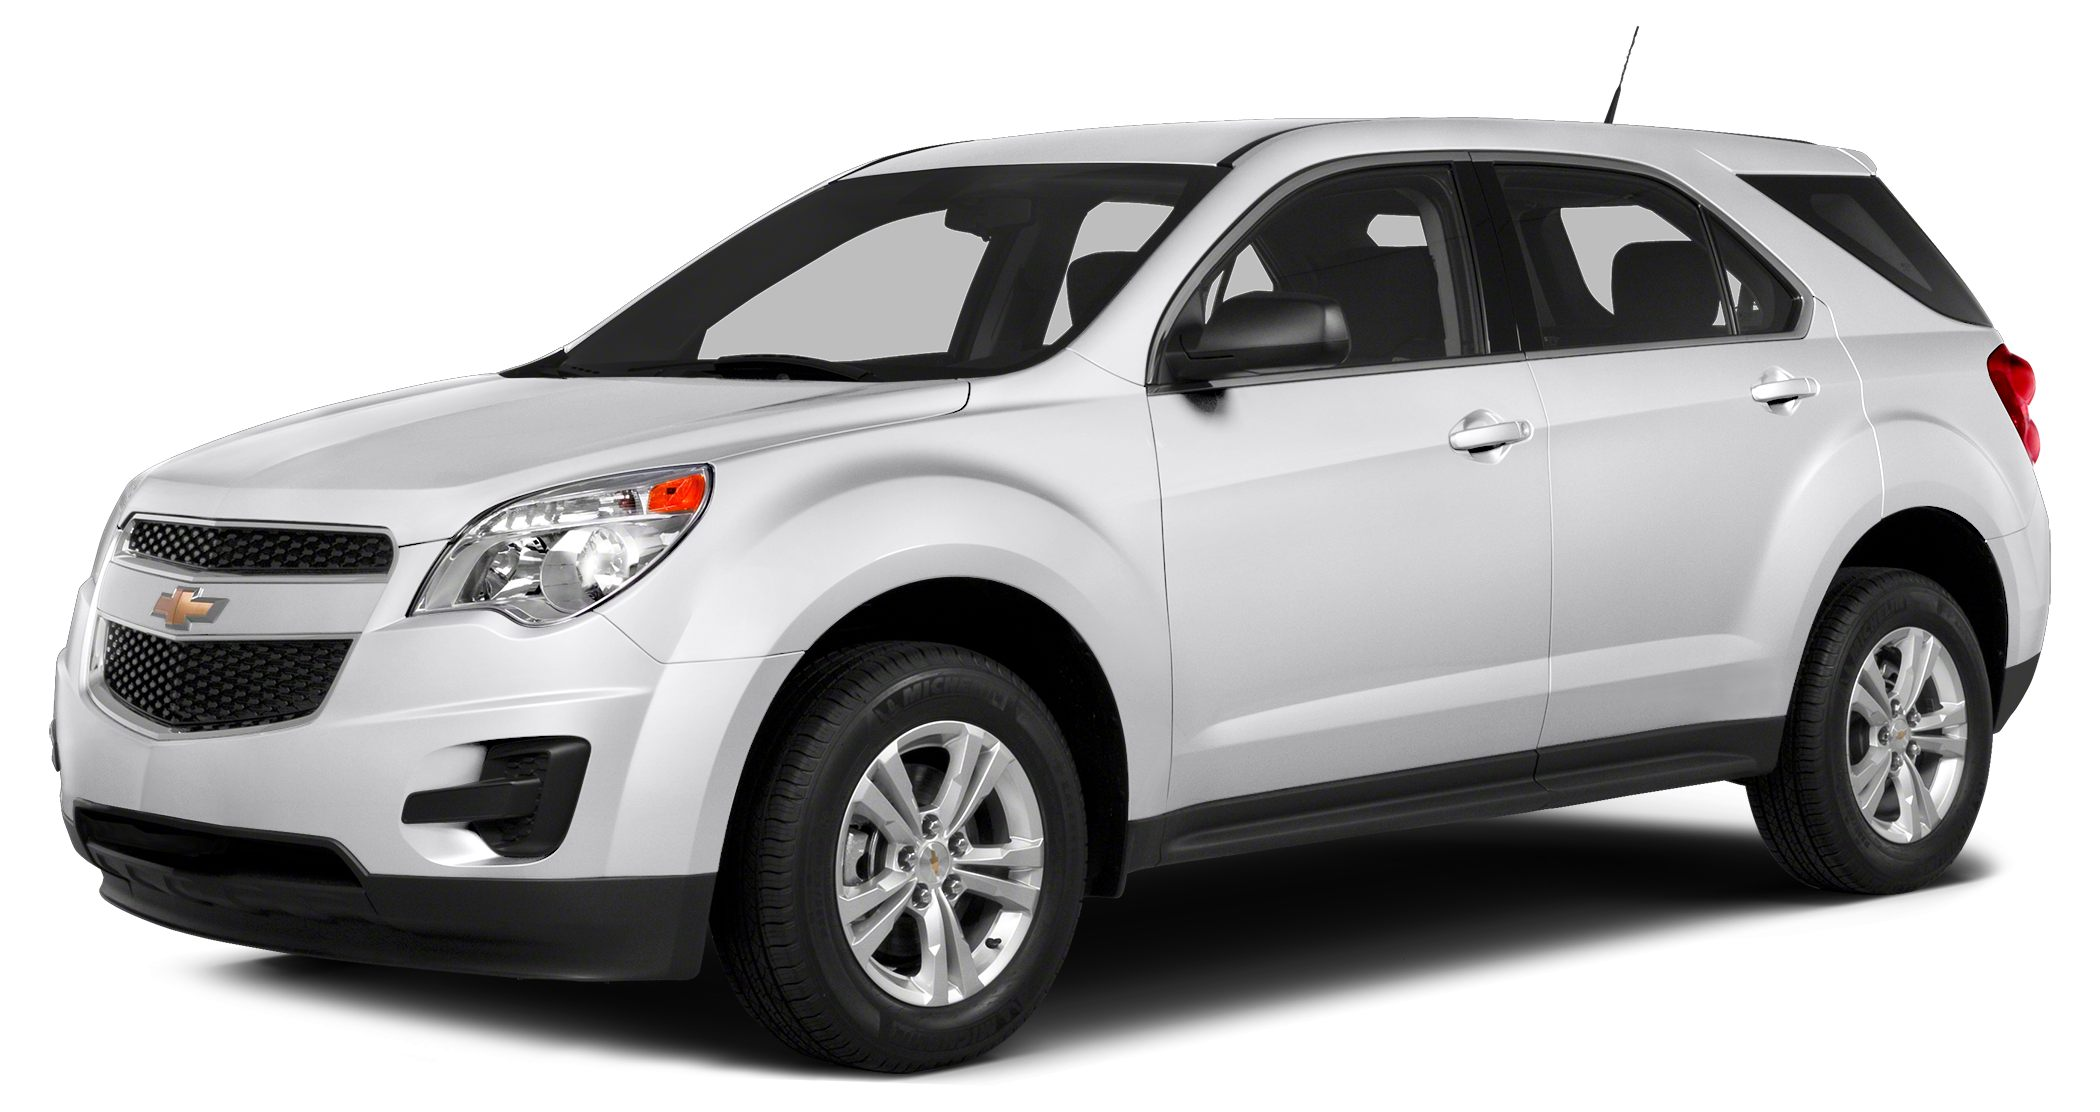 2014 Chevrolet Equinox LS This 2014 Chevrolet Equinox features a 24L 4 Cyls Engine Satellite Rad